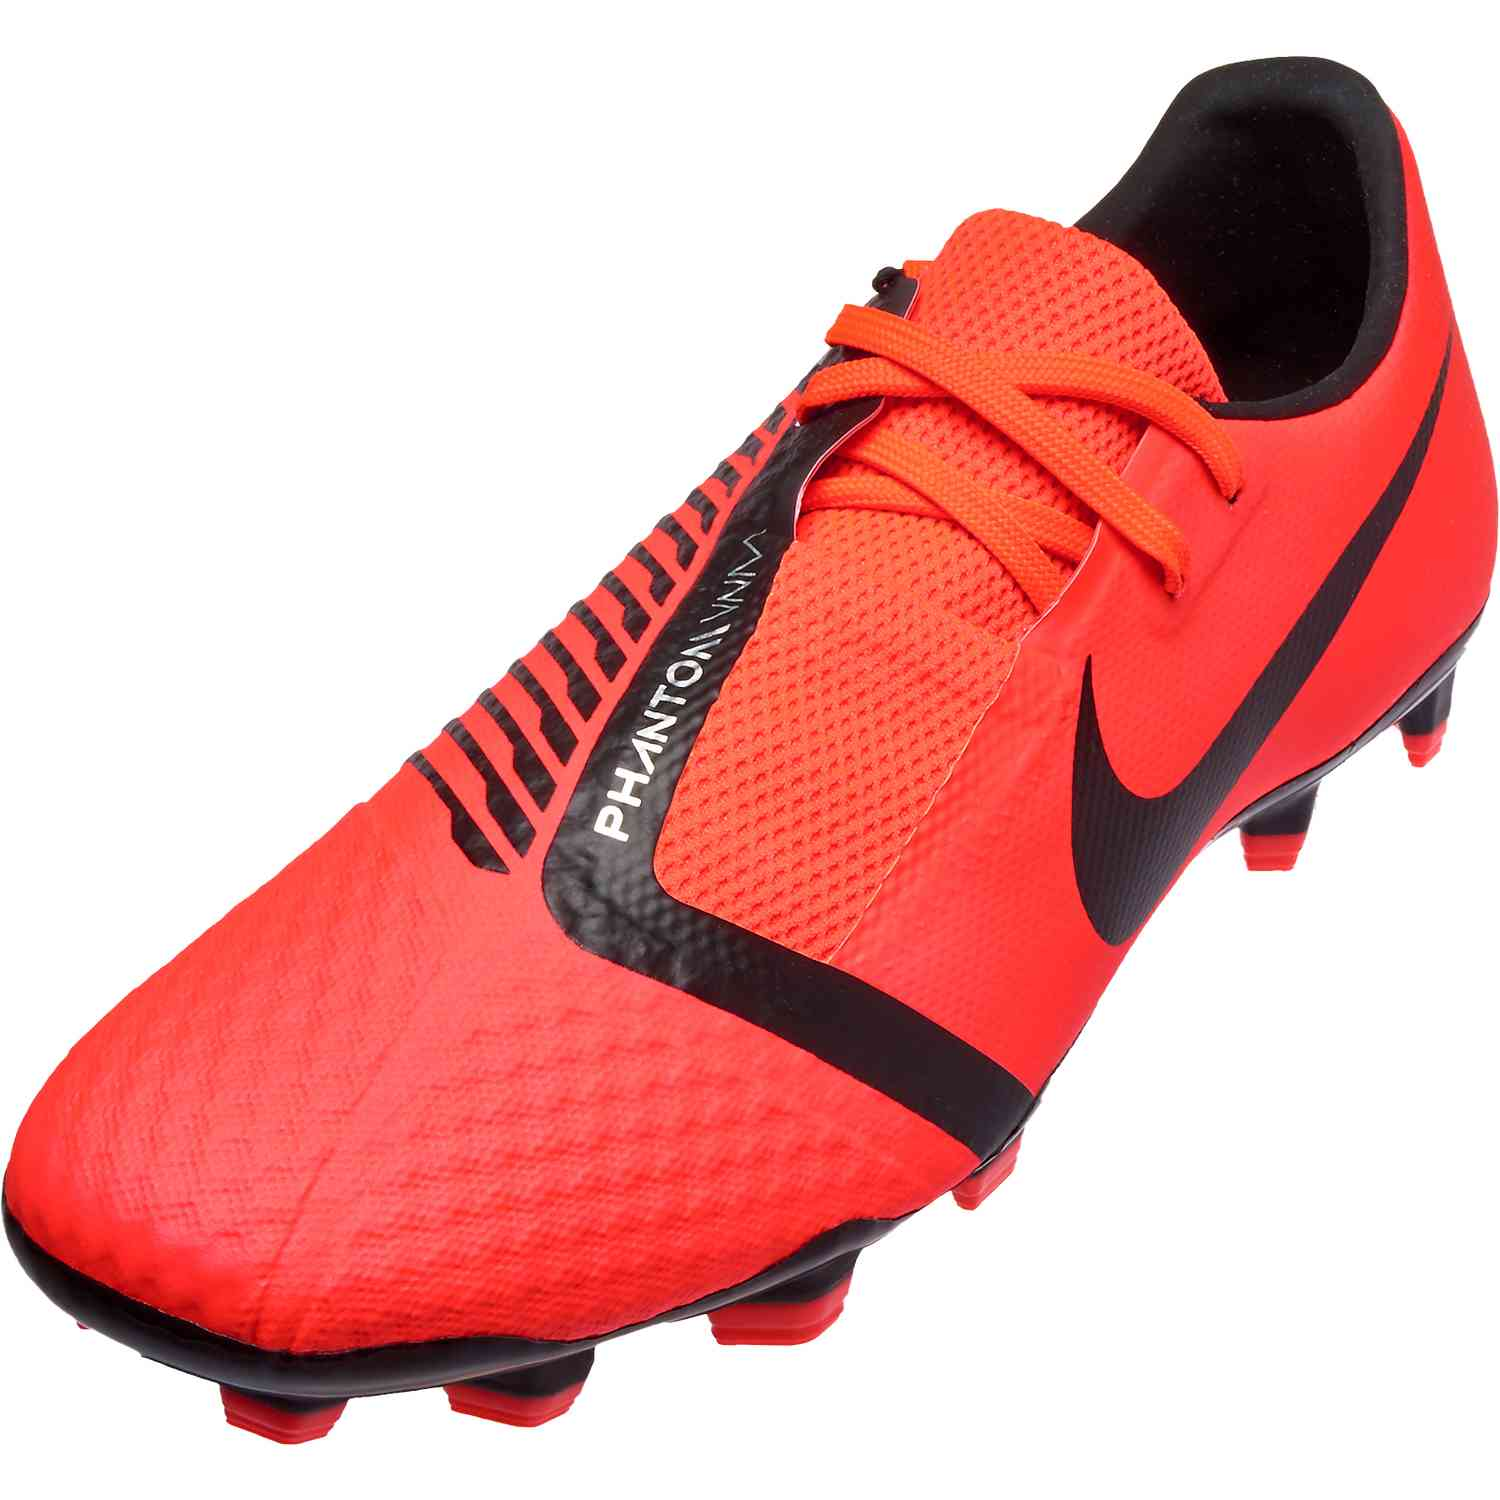 5410f66cdde Nike Phantom Venom Academy FG - Game Over - SoccerPro